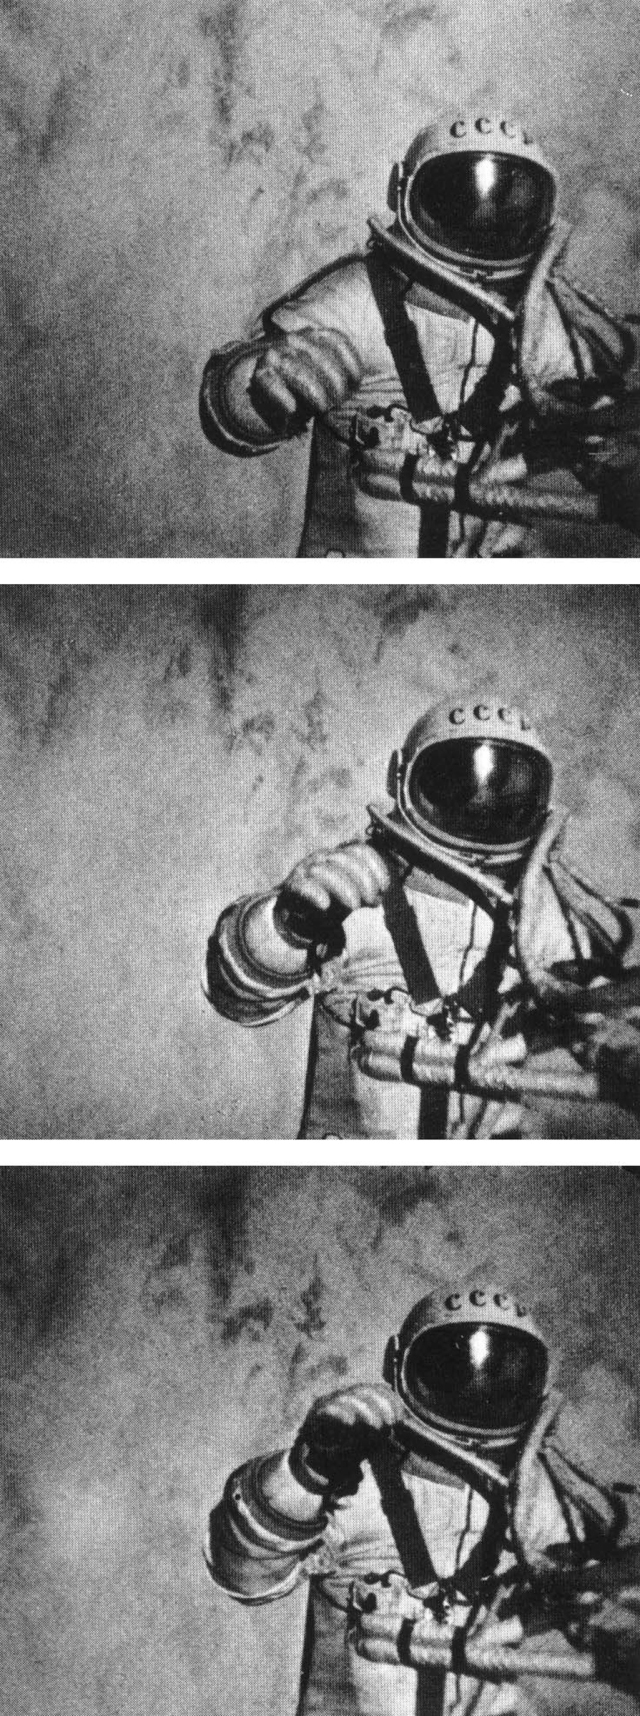 These three stills are from the external movie camera on the Soviet Voskhod 2, which recorded Aleksei Leonov's historic spacewalk on March 18, 1965. Leonov's EVA made him the first human to ever walk in space, giving the Soviet Union yet another space first.